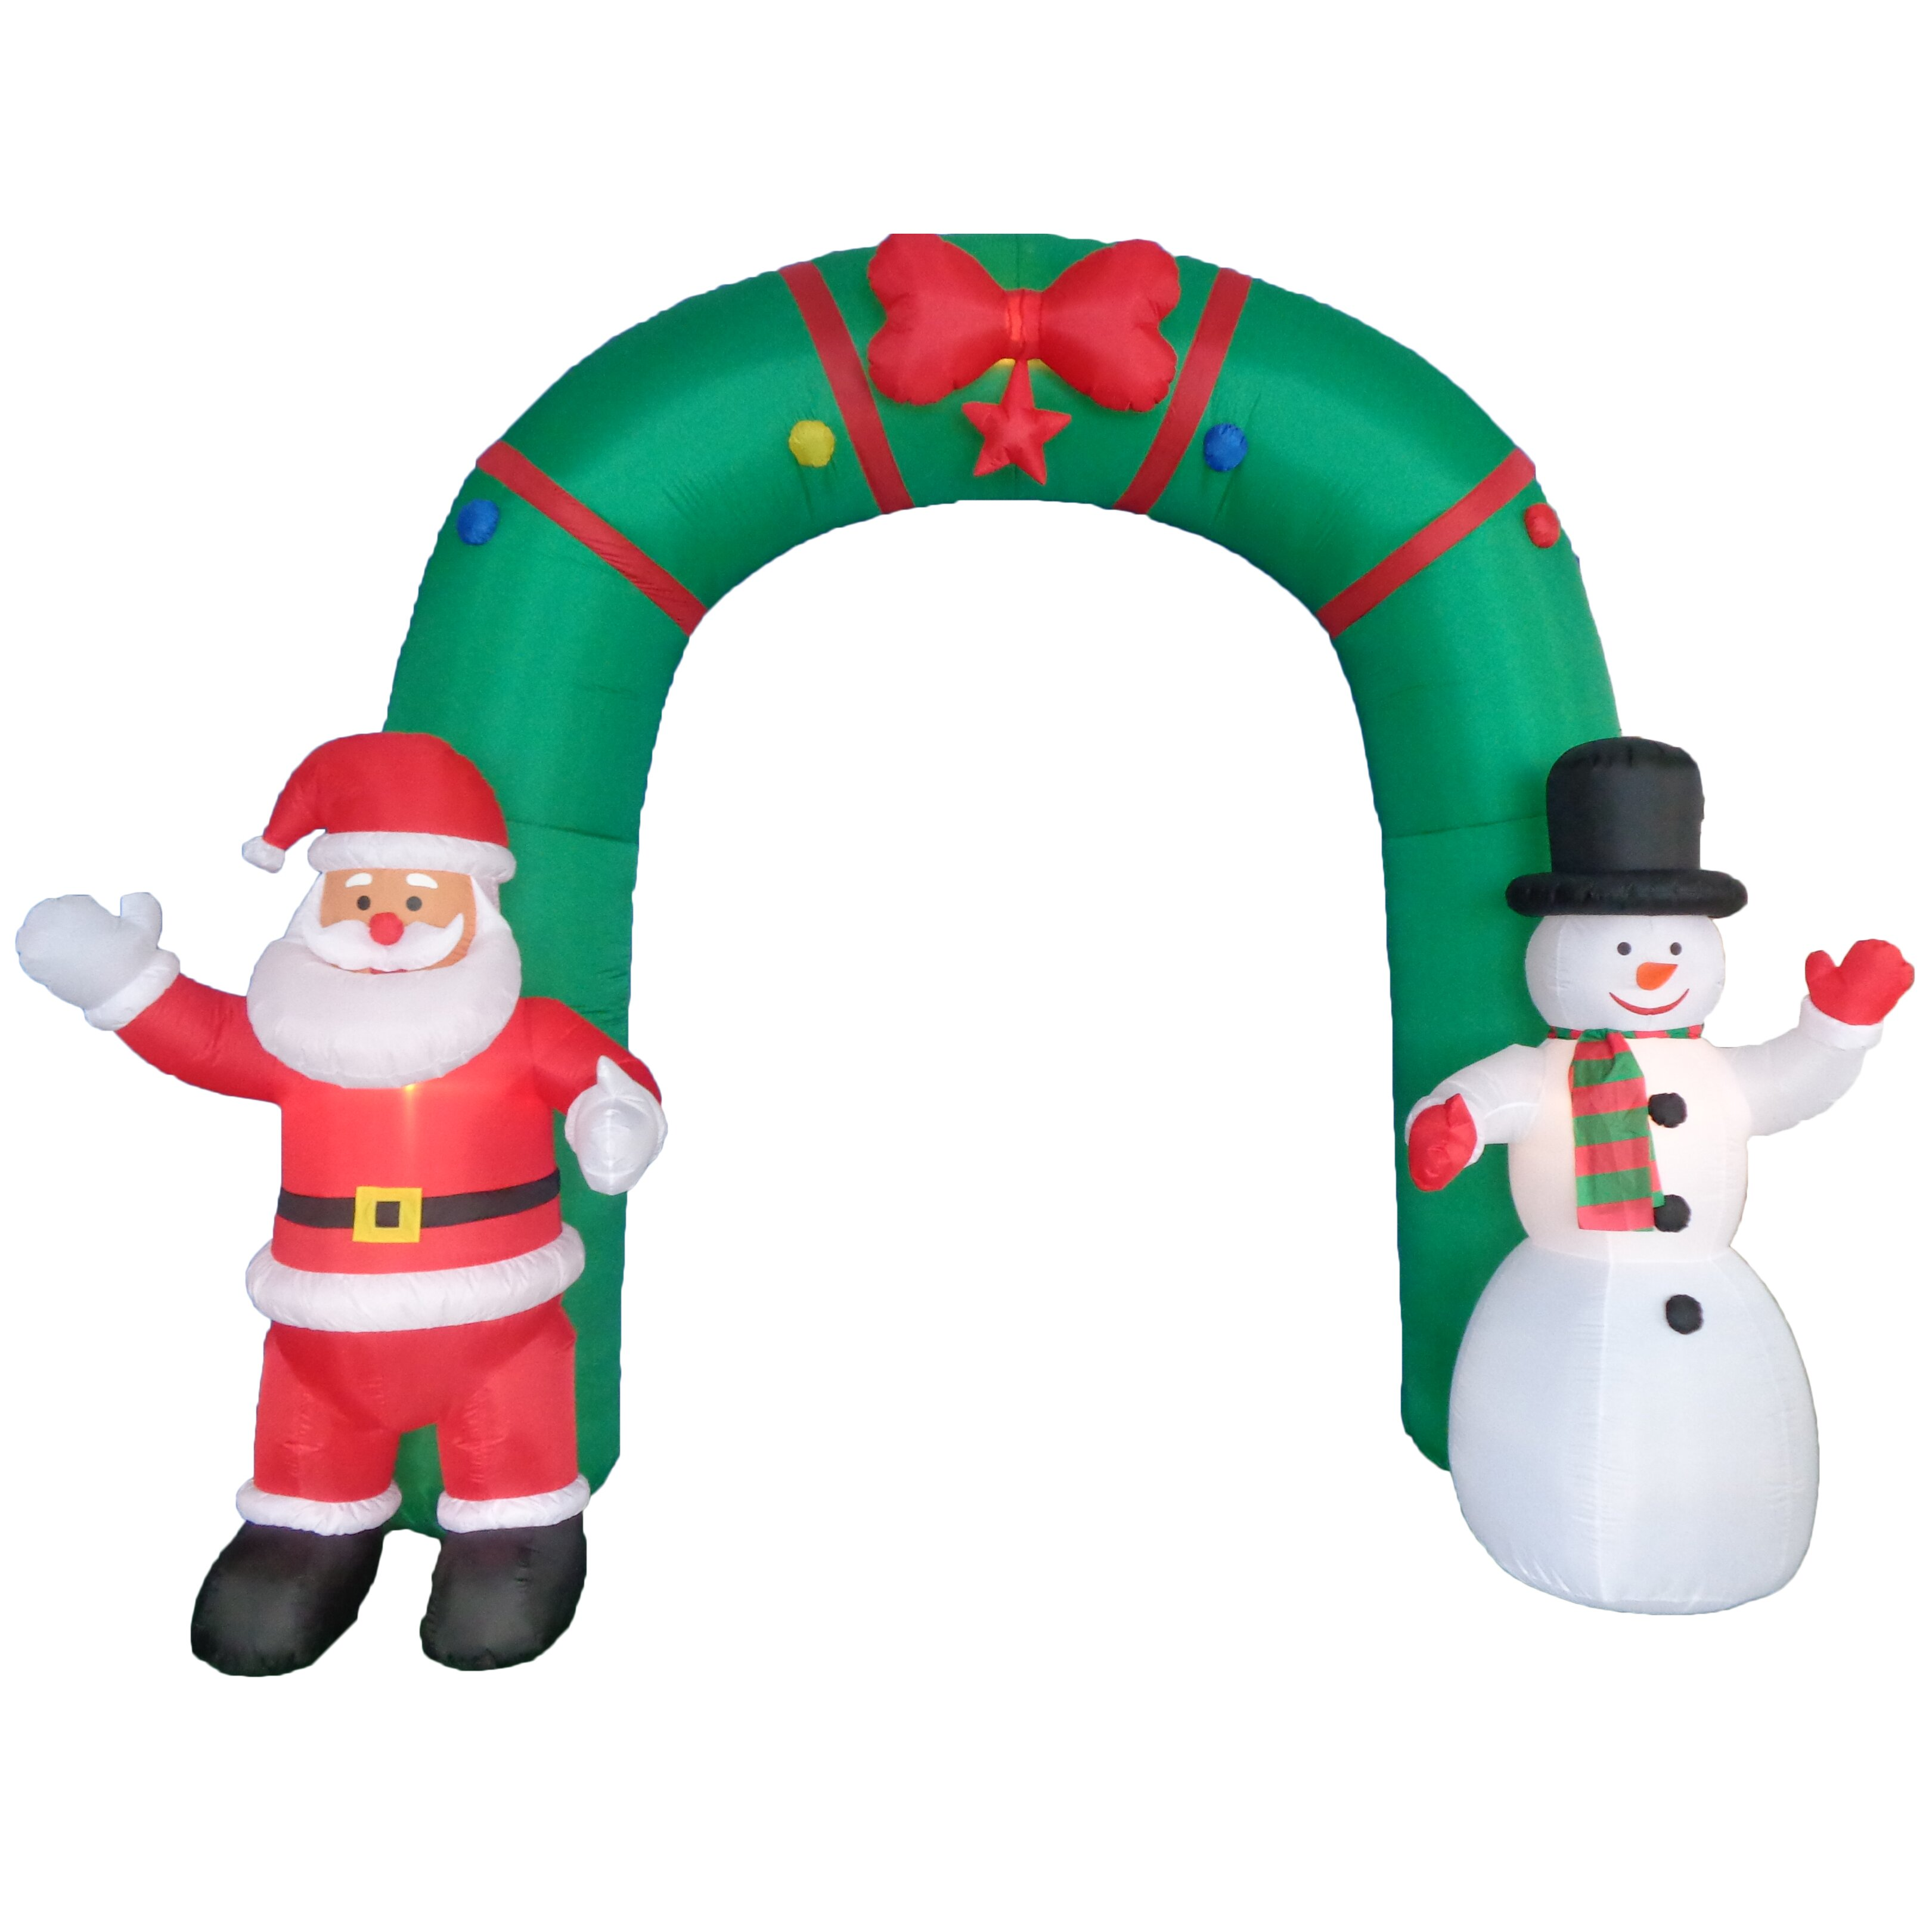 Bzb Goods Christmas Inflatable Archway Indoor Outdoor